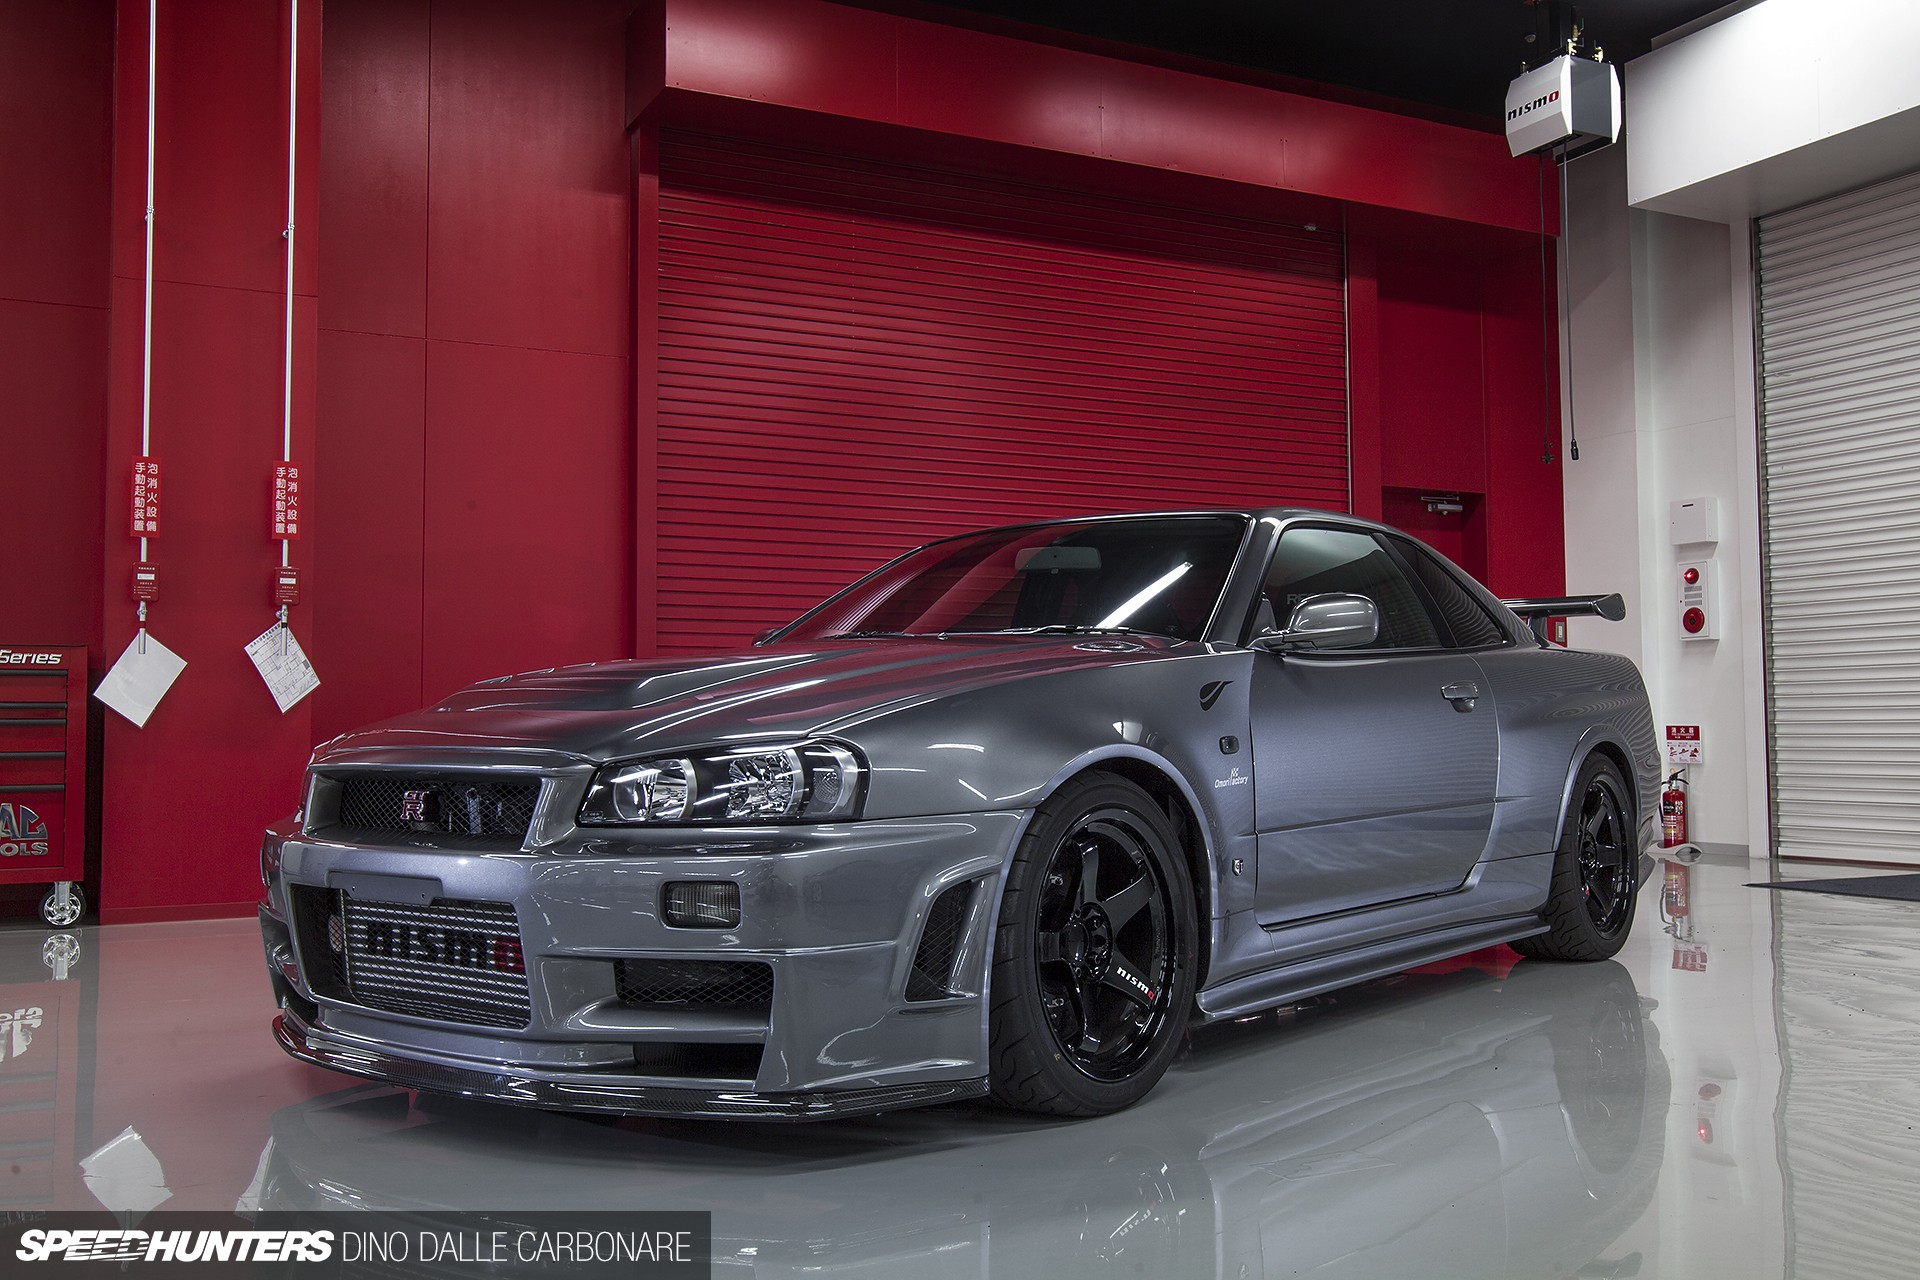 Nissan Skyline GT R Speedhunters Car Nismo Wallpapers